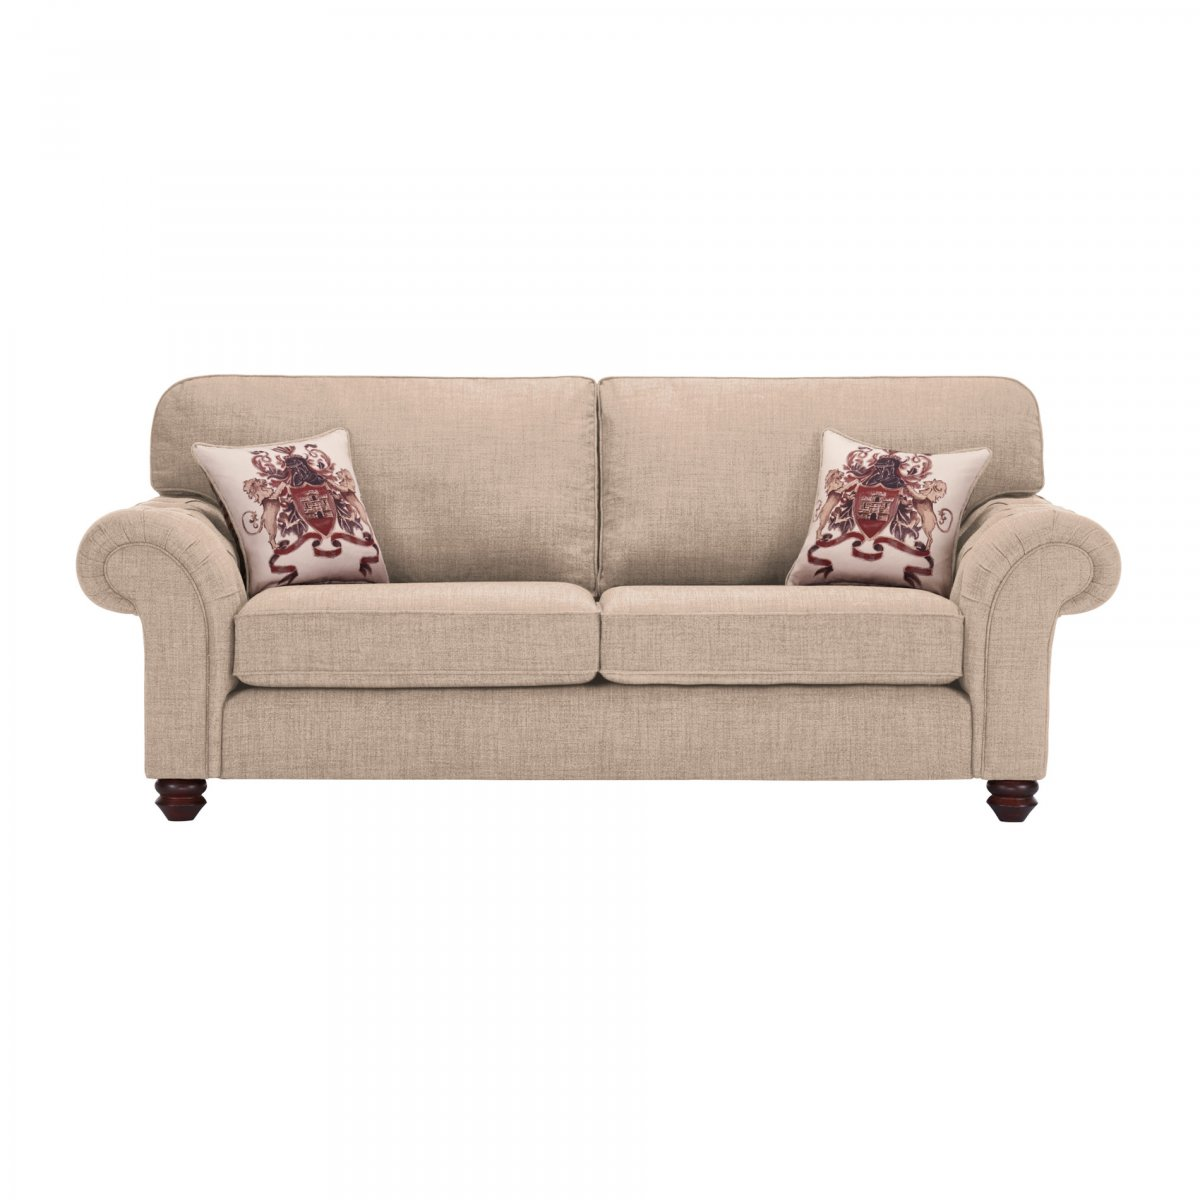 Sandringham 3 Seater High Back Sofa In Beige Beige Scatter